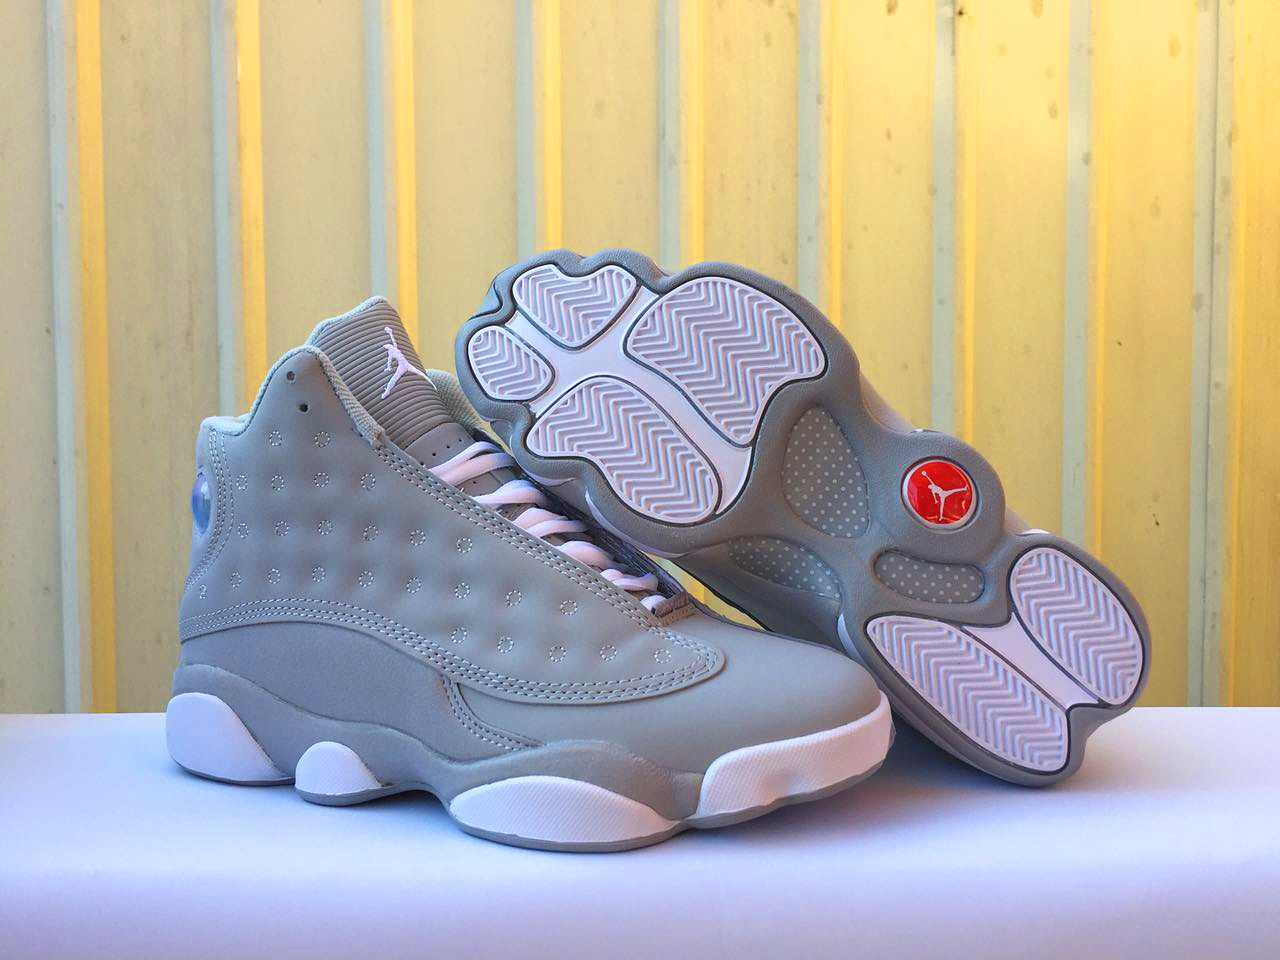 Jordans 13 Unique Grey Shoes